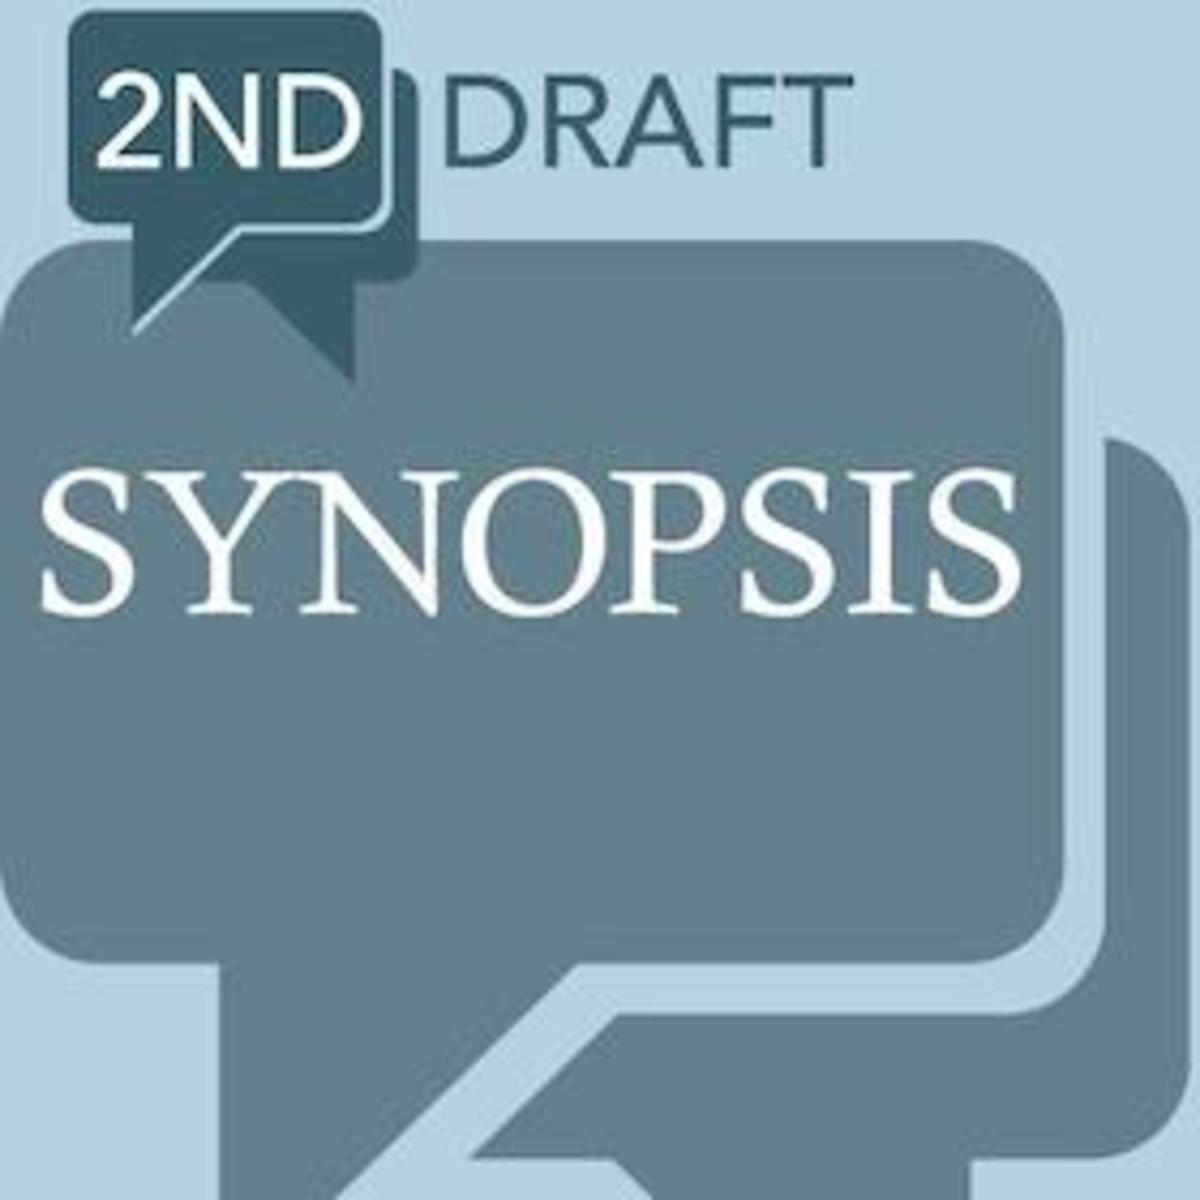 2nd Draft Synopsis